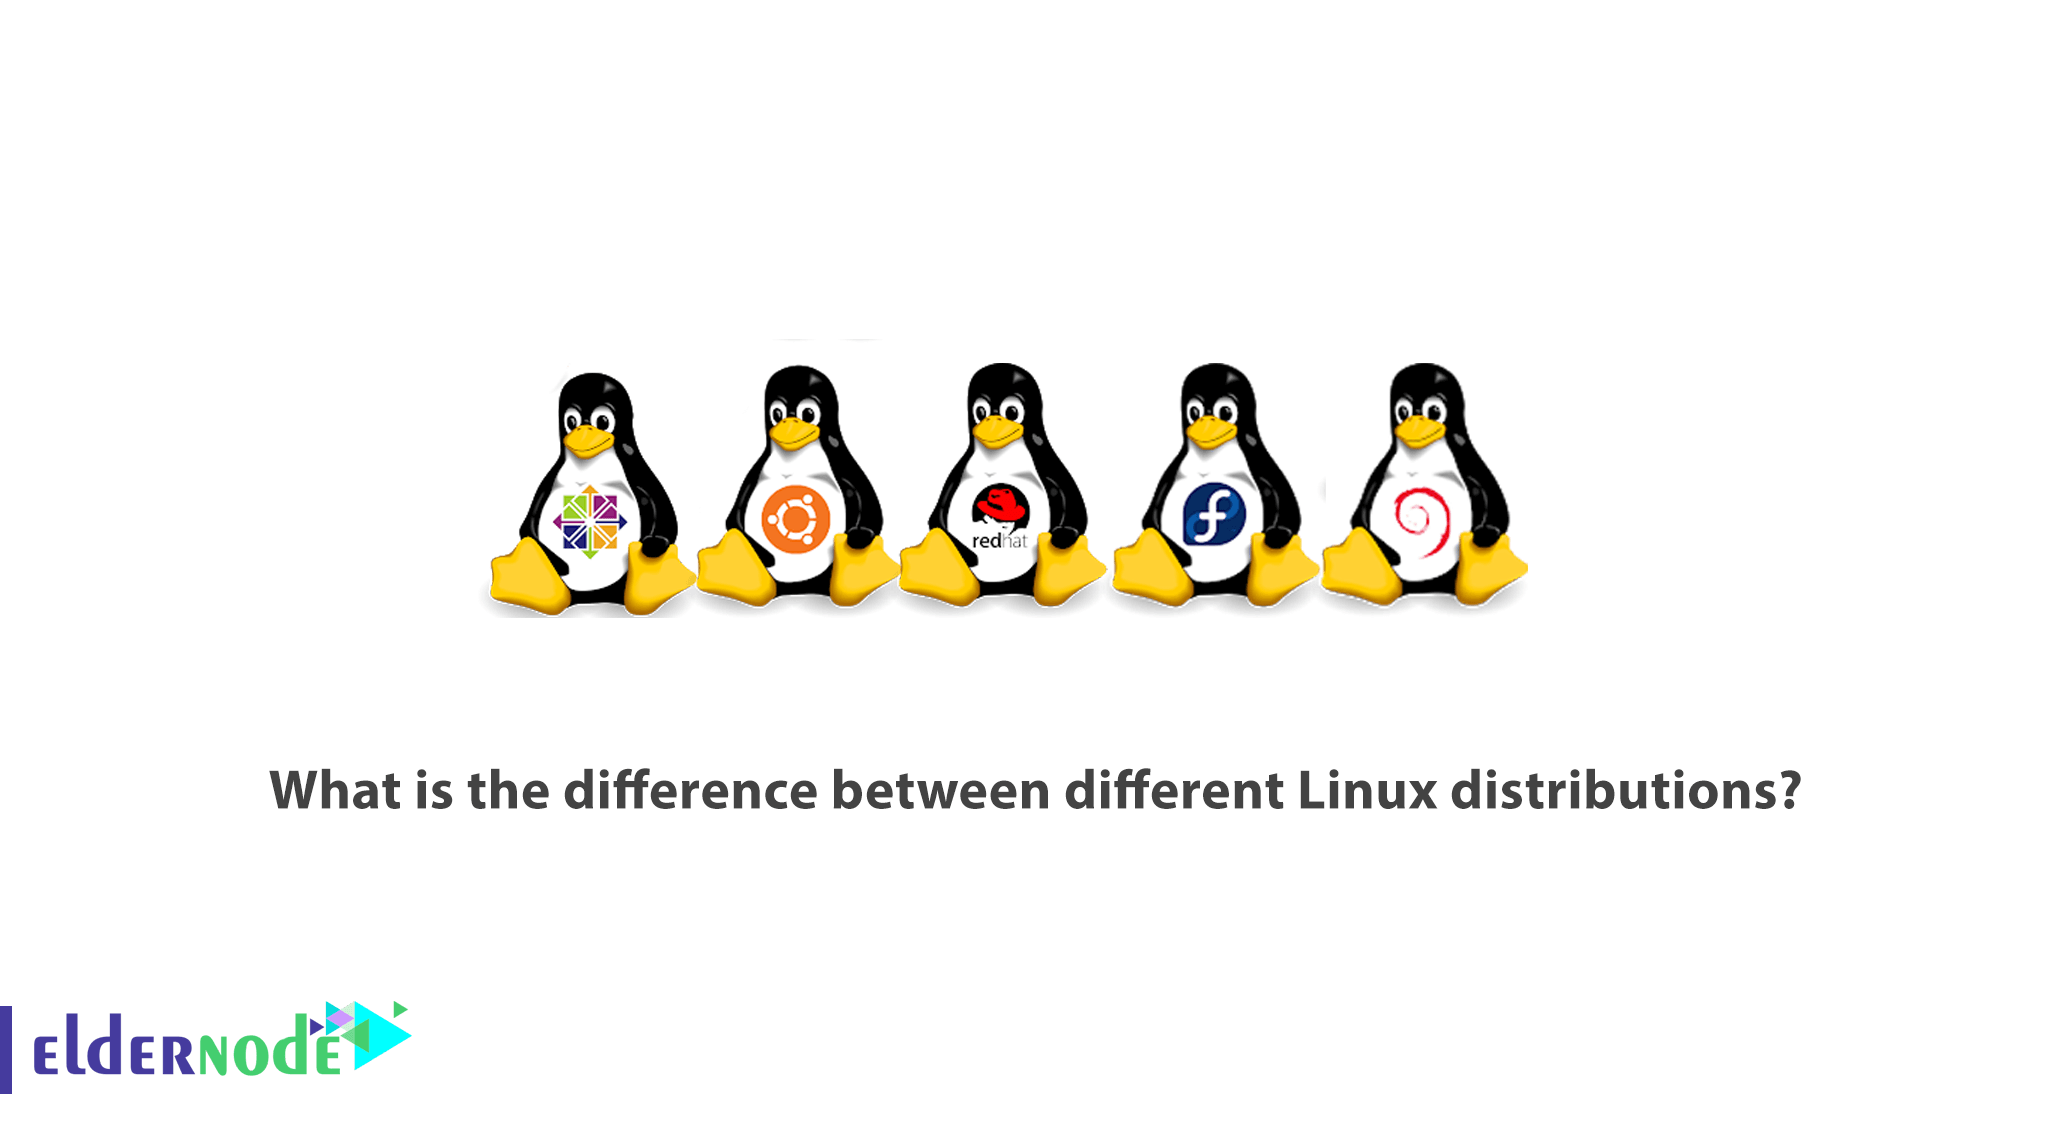 What is the difference between different Linux distributions